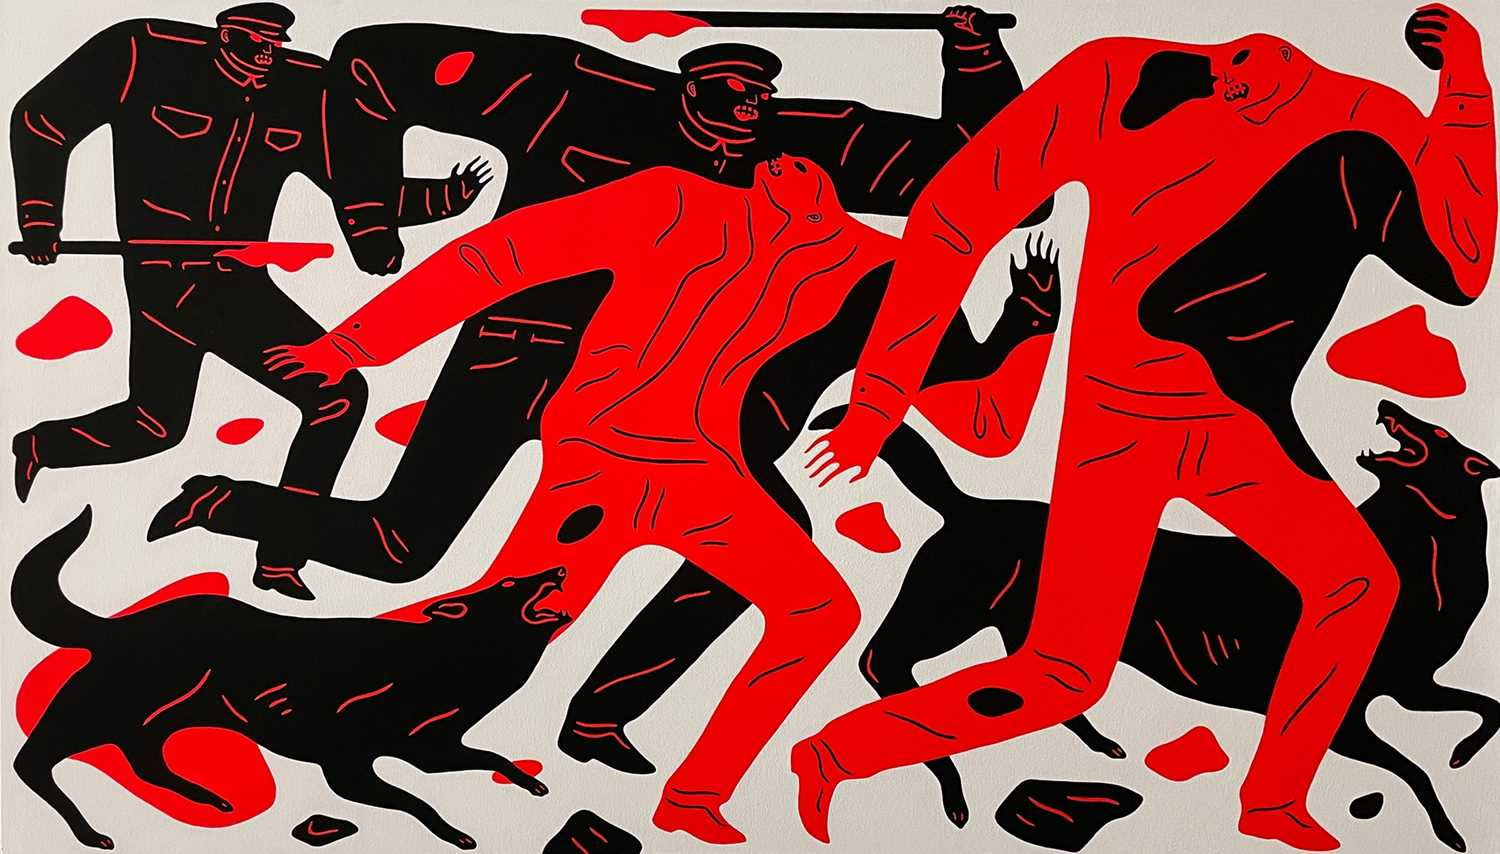 Lot 2 - Cleon Peterson (American 1973-)